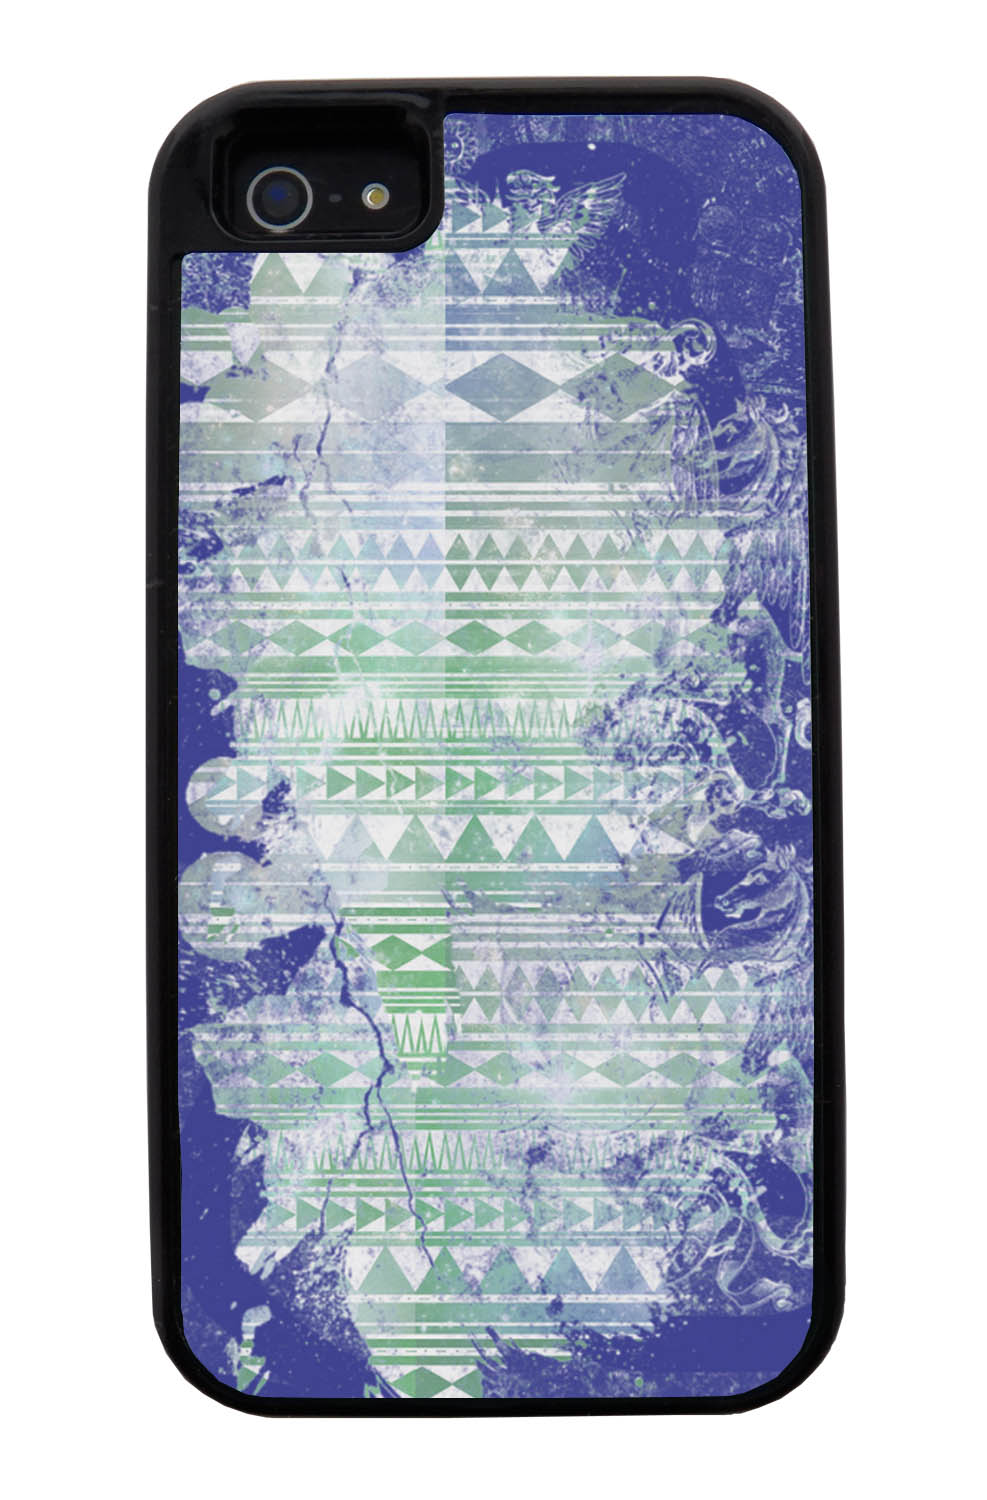 Apple iPhone 5 / 5S Aztec Case - Purple and Off-White Paint with Green - Paint Splatter Overlay - Black Tough Hybrid Case